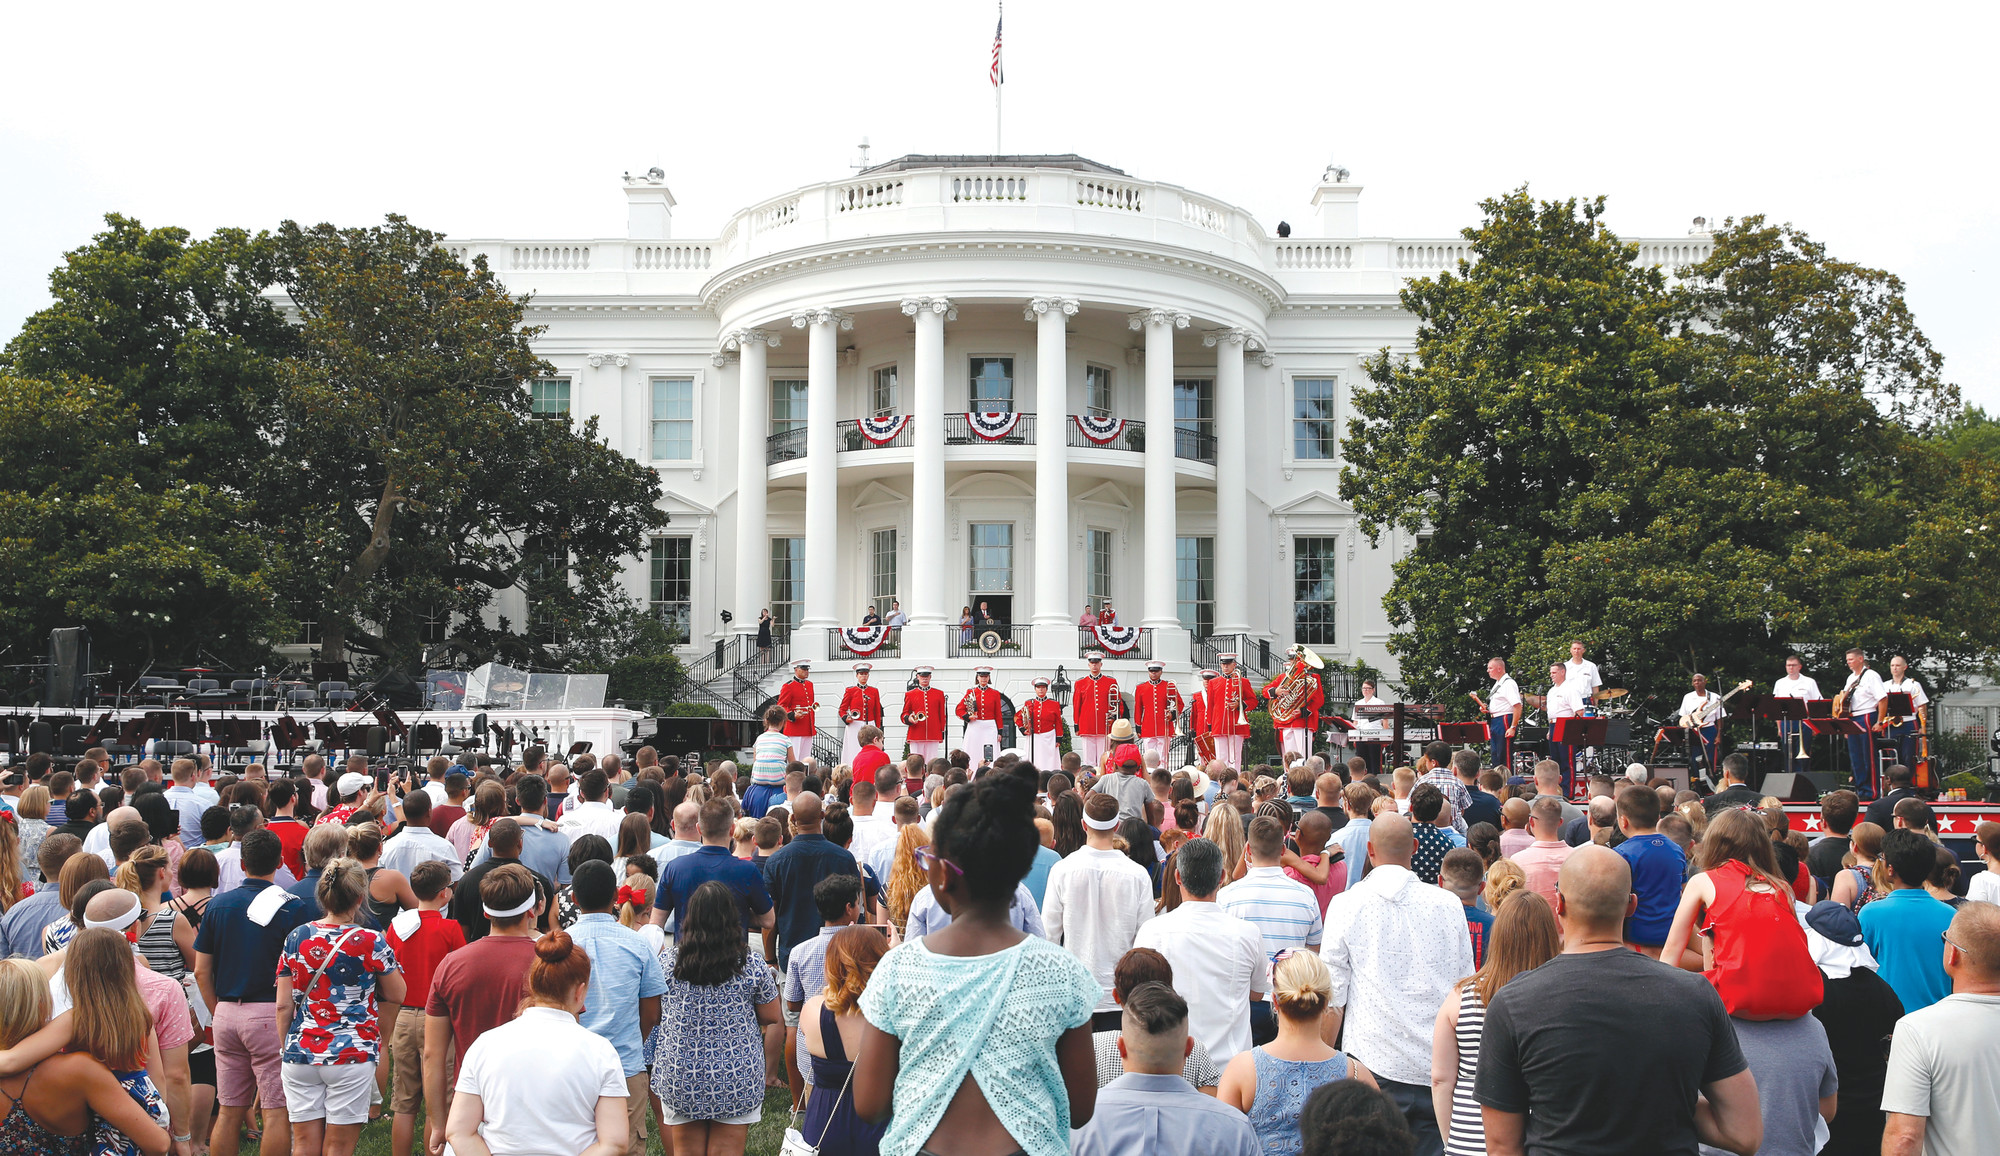 Visitors gather at the White House for the playing of the national anthem during an afternoon picnic for military families on the South Lawn of the White House on July 4 in Washington.